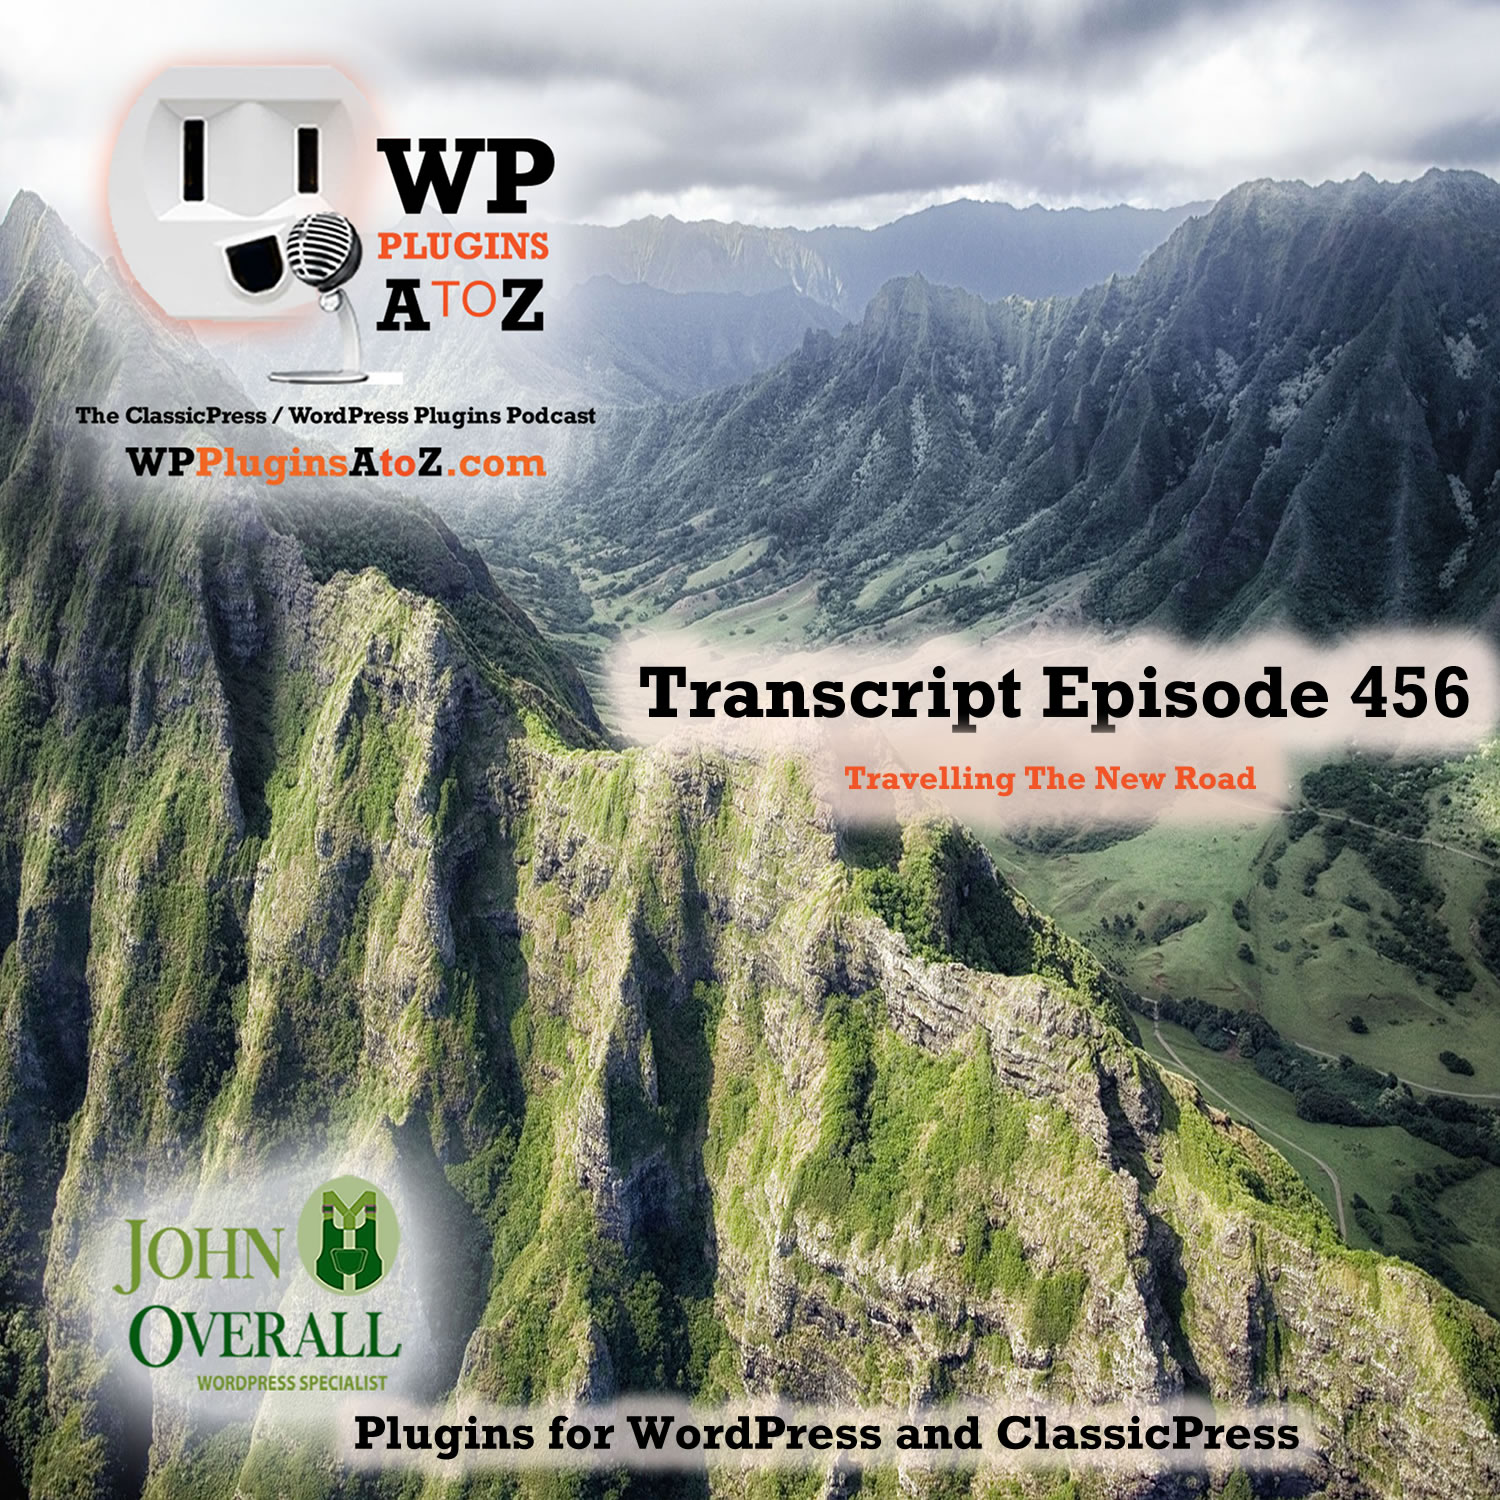 It's Episode 456 with plugins for Migration & Searching, Emailing & Posts Queries, SEO, Tracking the Virus, and ClassicPress Options. It's all coming up on WordPress Plugins A-Z!